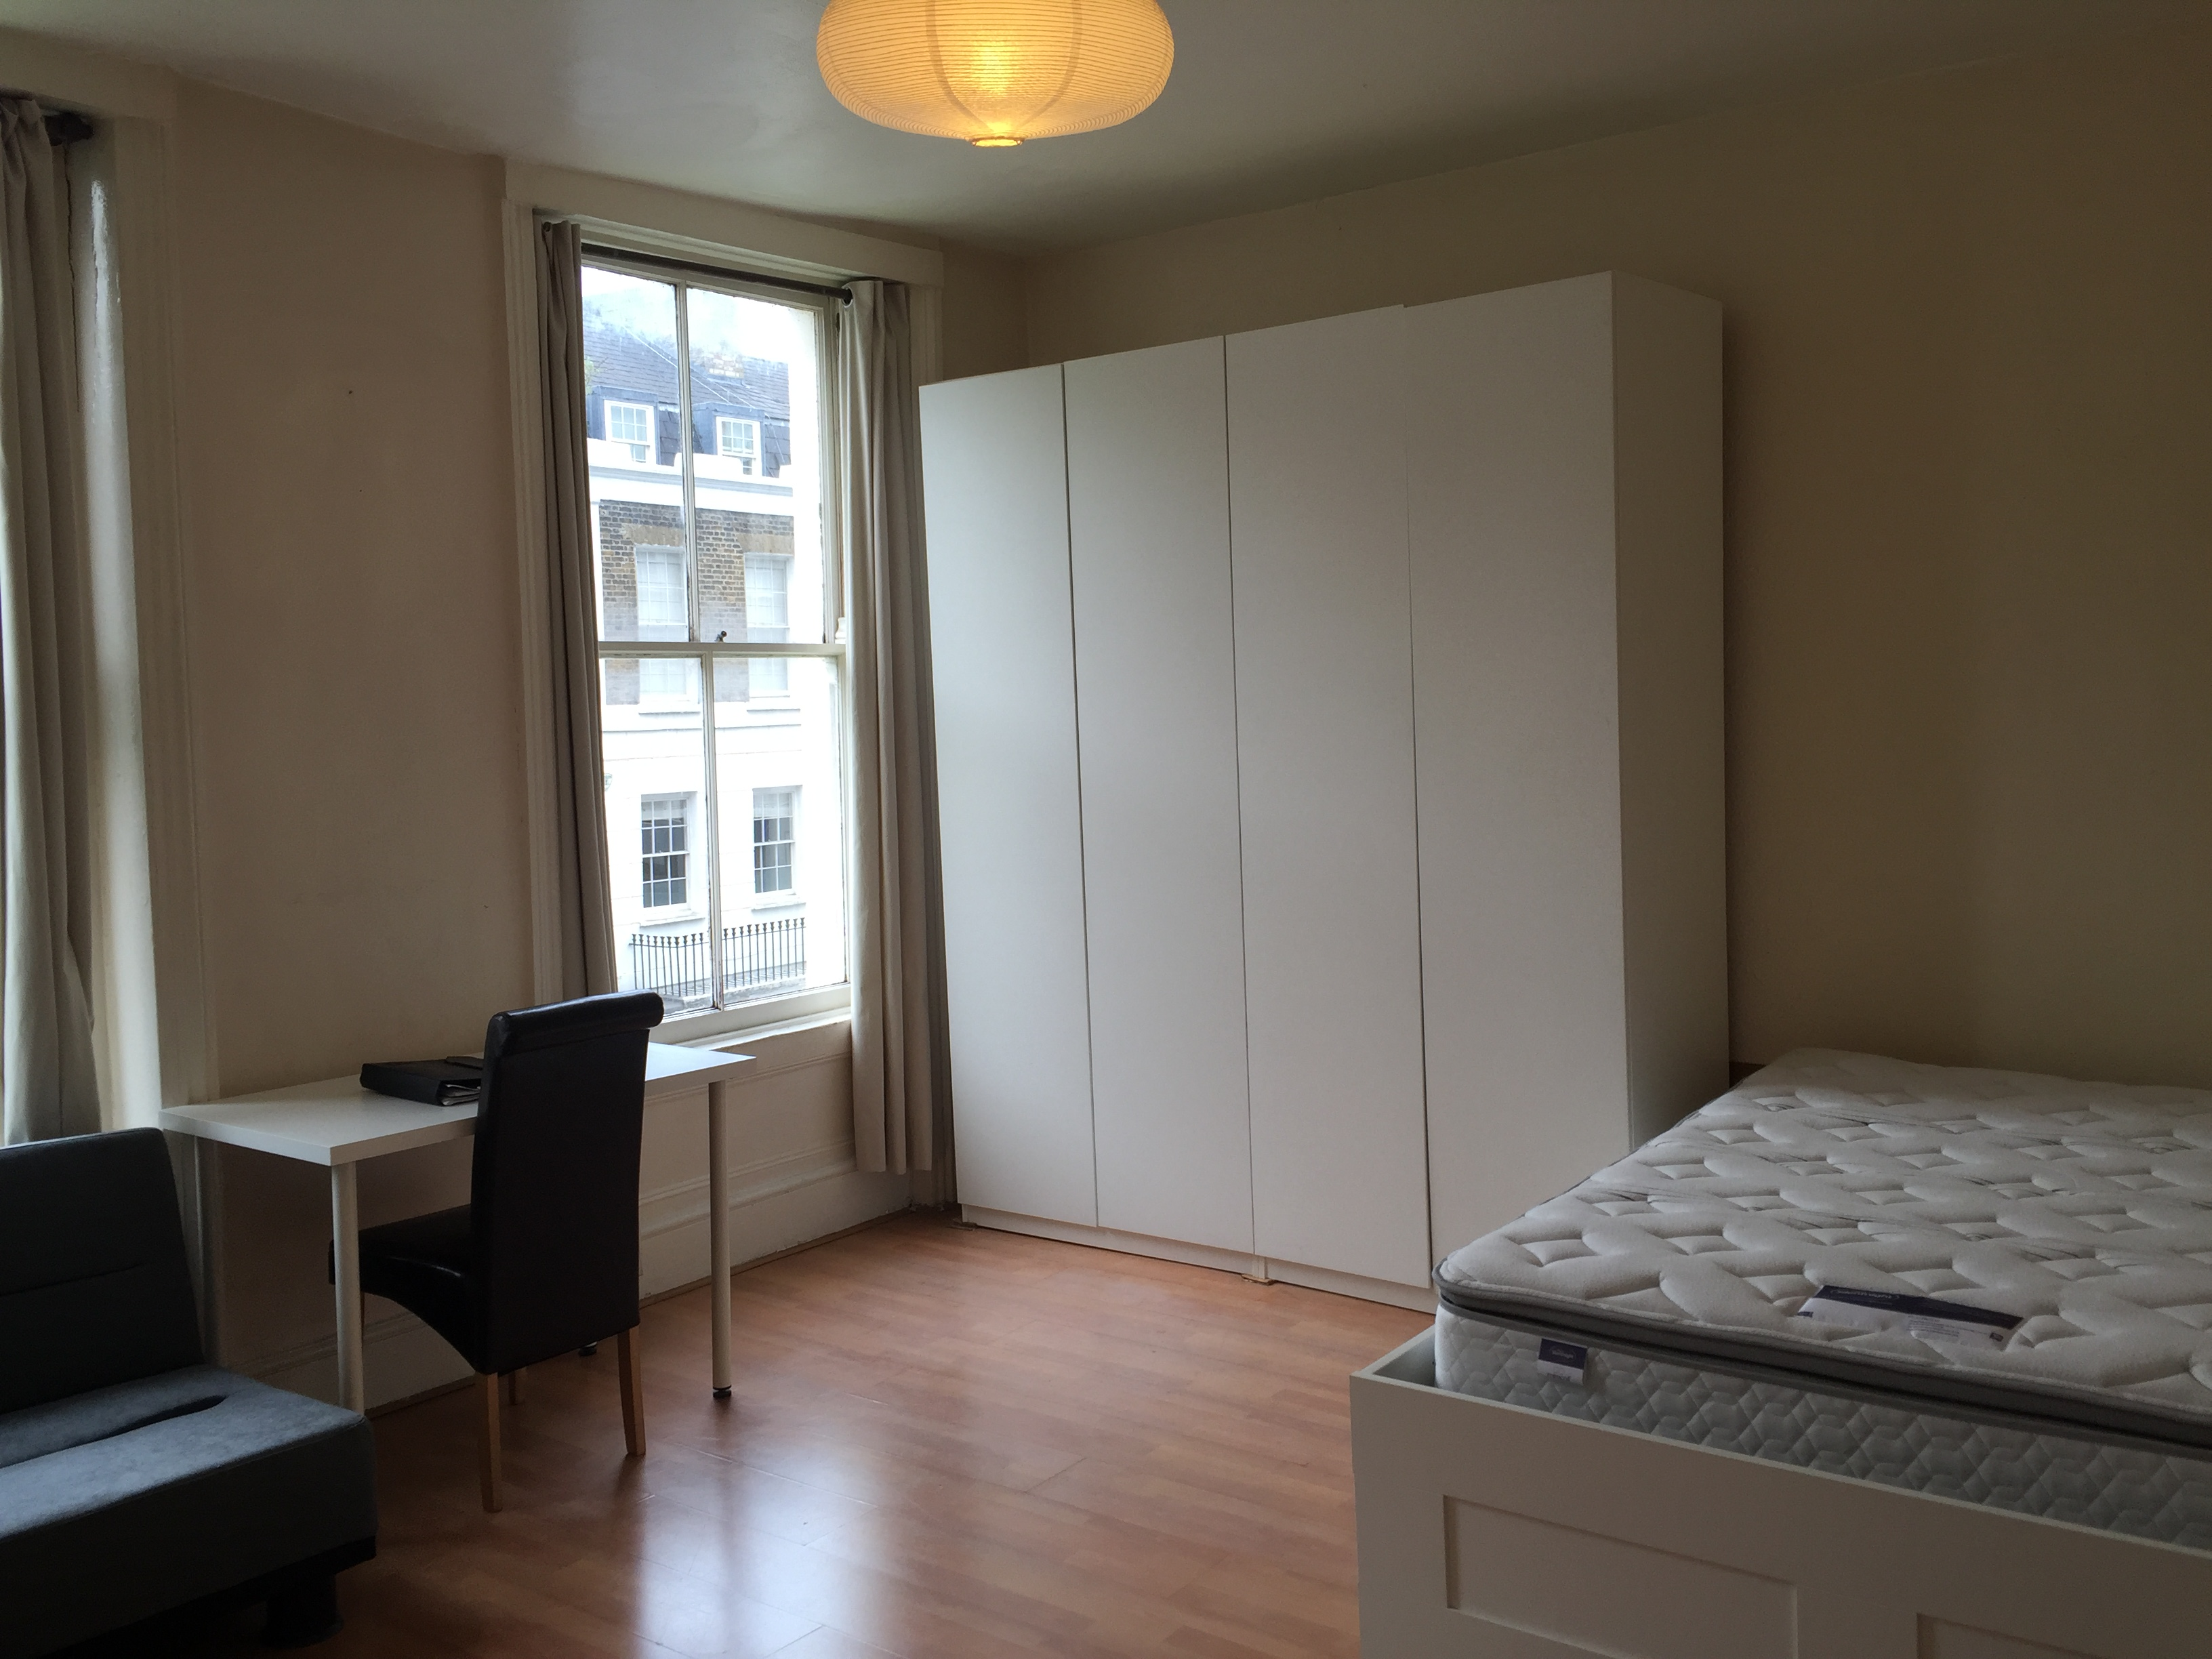 Studio Apartment Studio in ST Peters Street, Angel N1 8JR